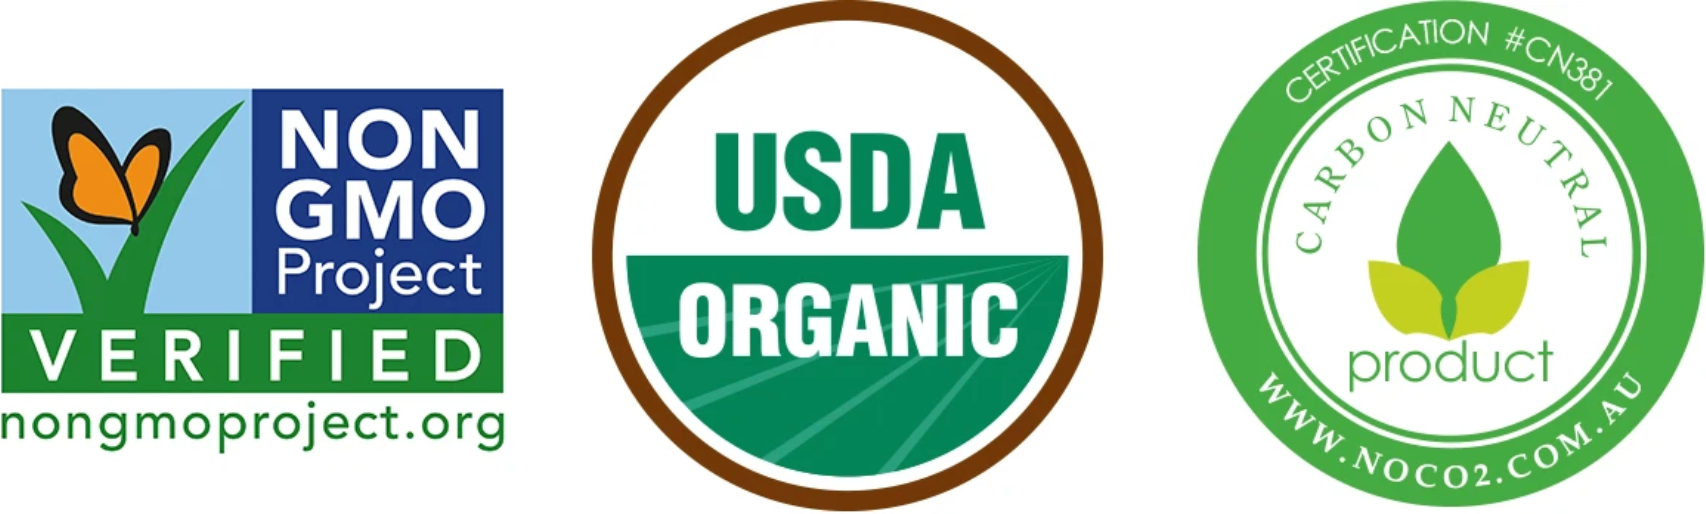 Organic Grass-fed T-Bone Steak non-gmo project verified usda organic carbon neutral animal welfare Certifications